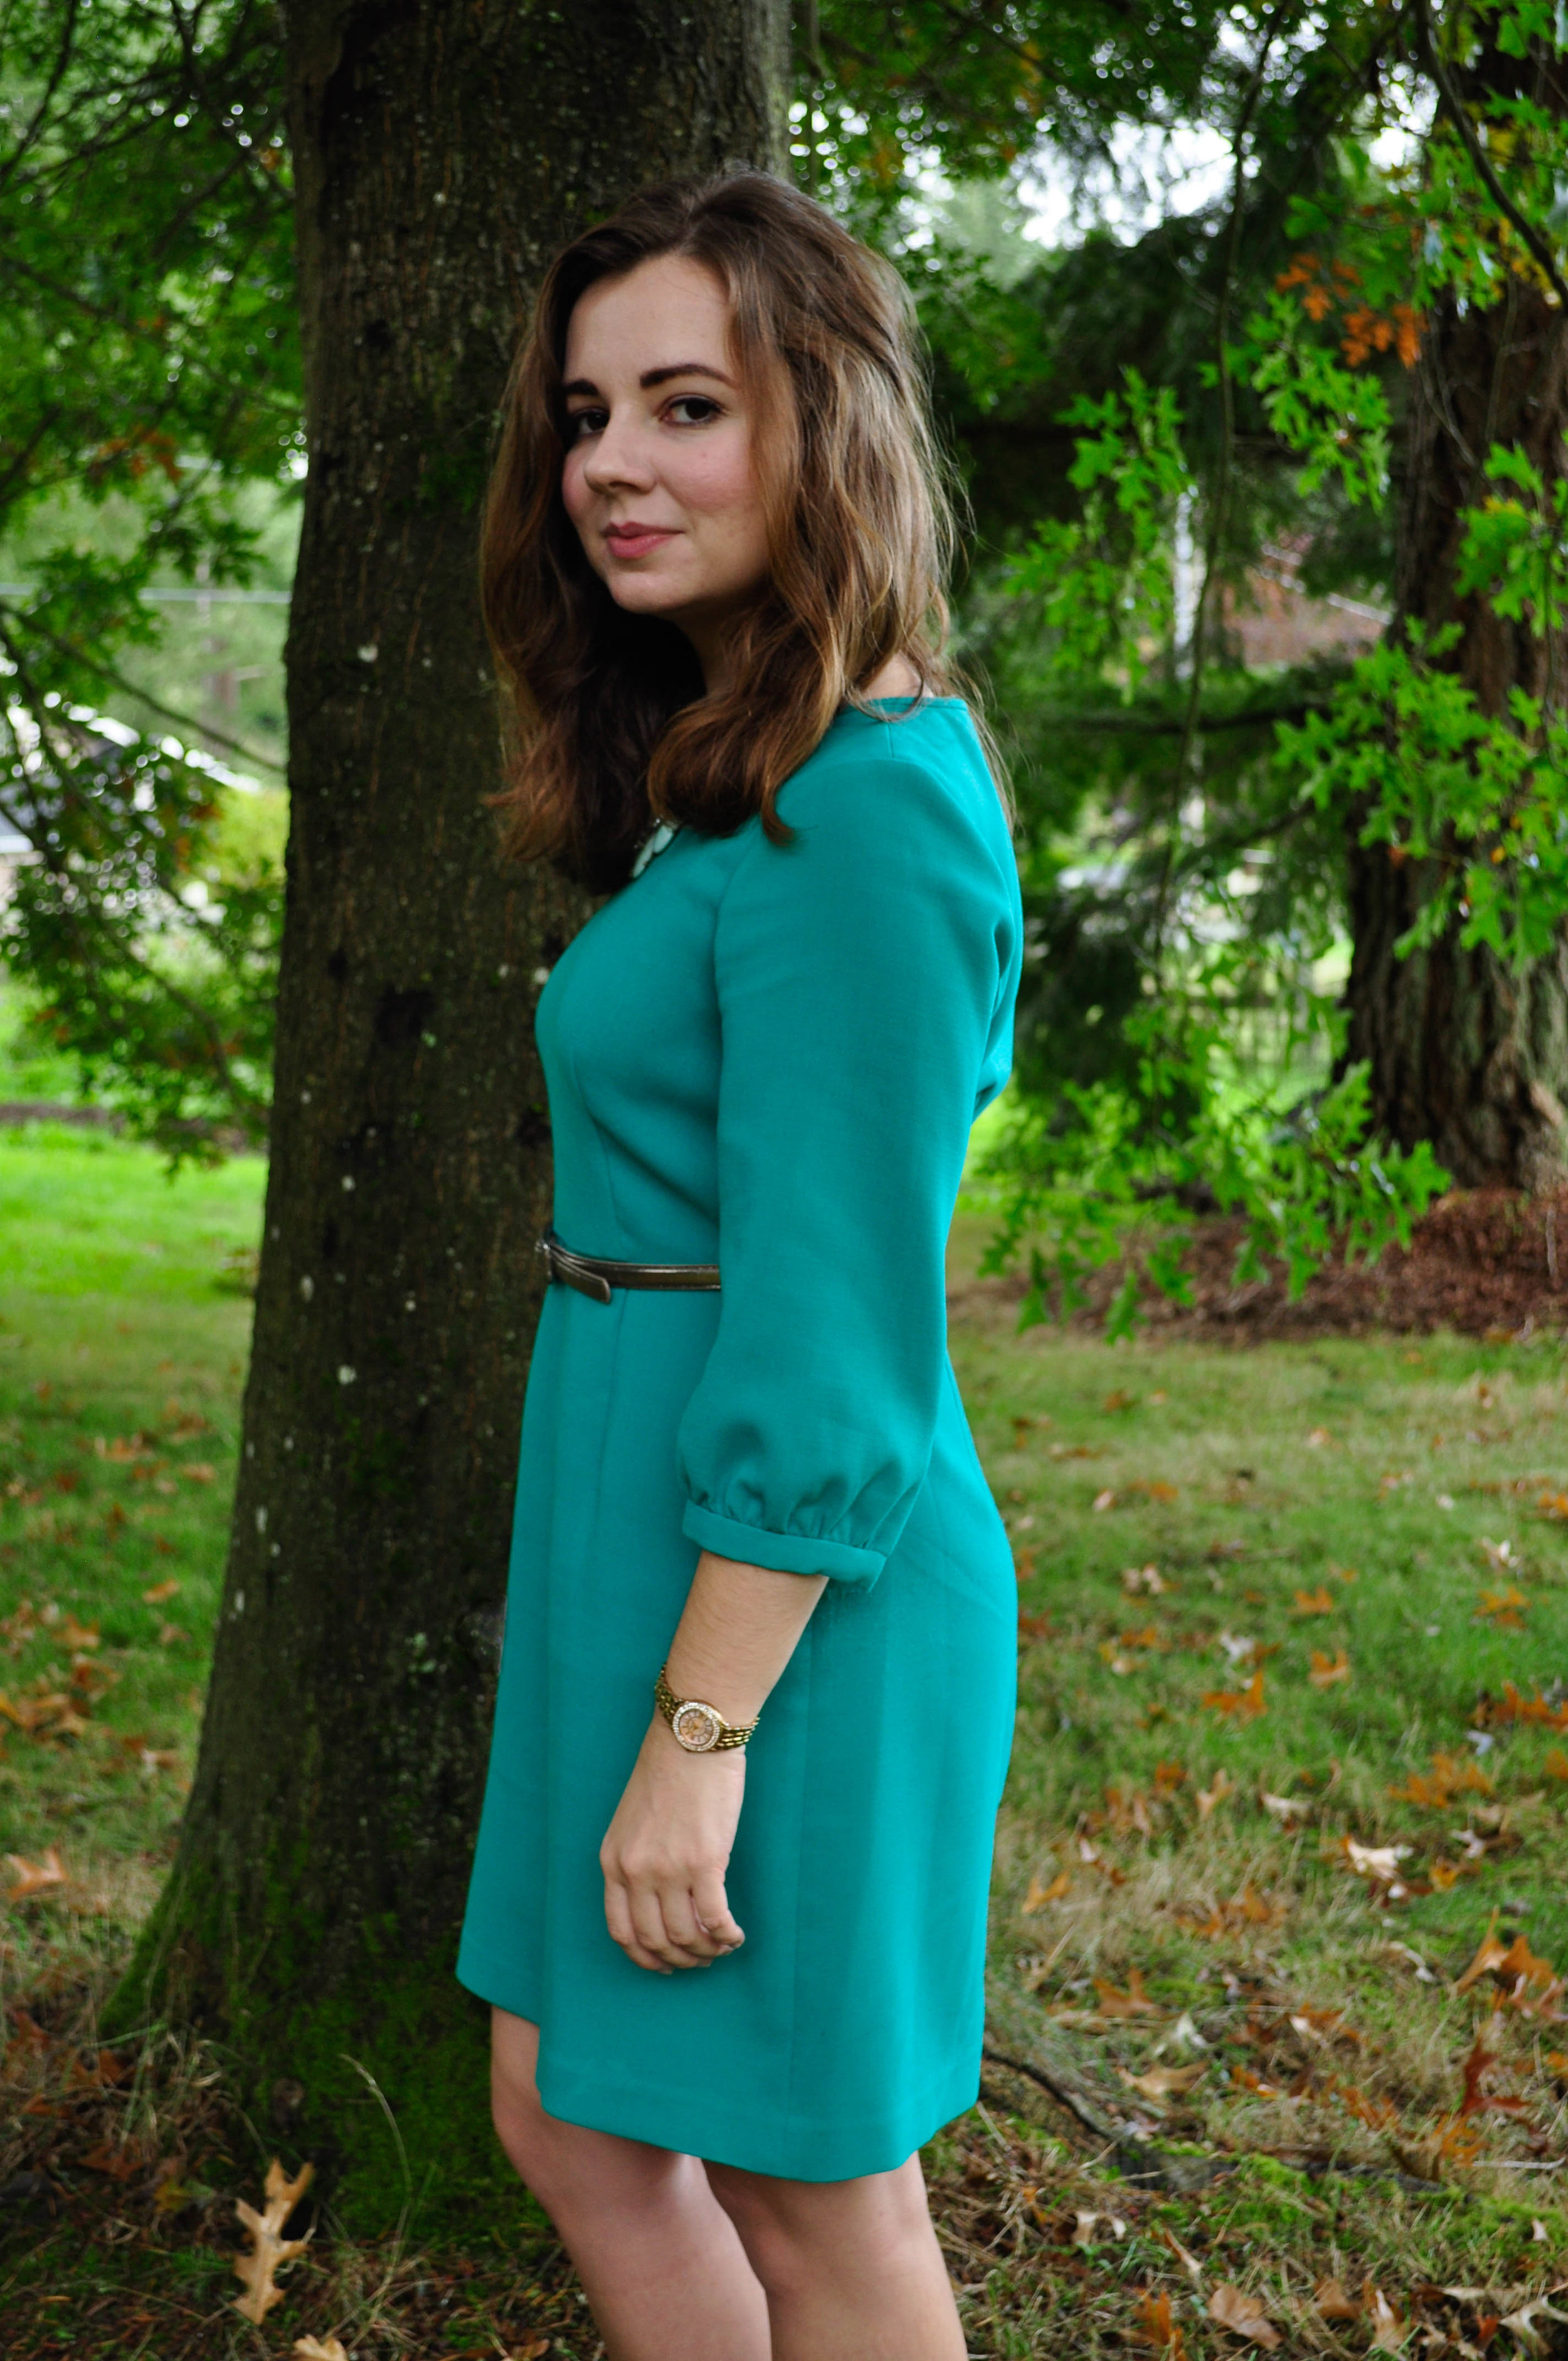 The favorite green dress